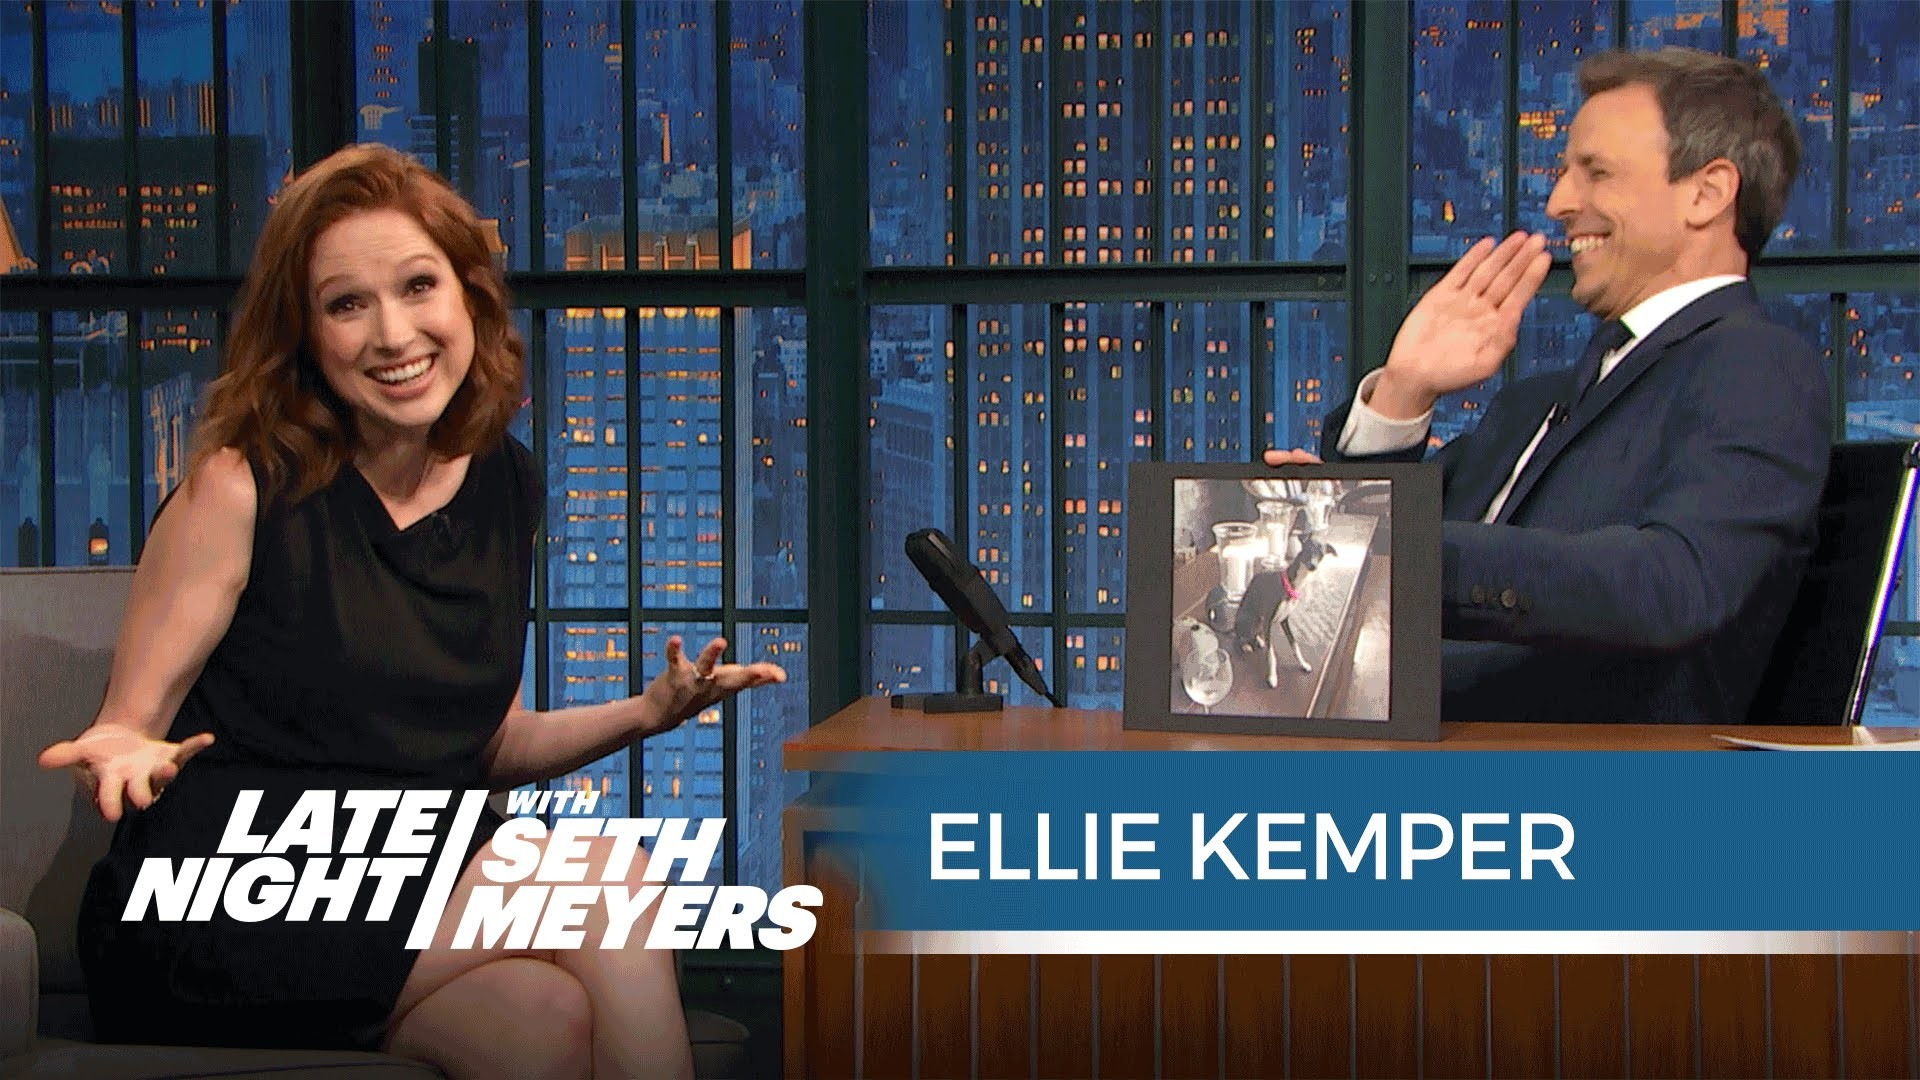 1920x1080 Like Andy Samberg, Ellie Kemper Does Not Understand Seth's Dog - YouTube